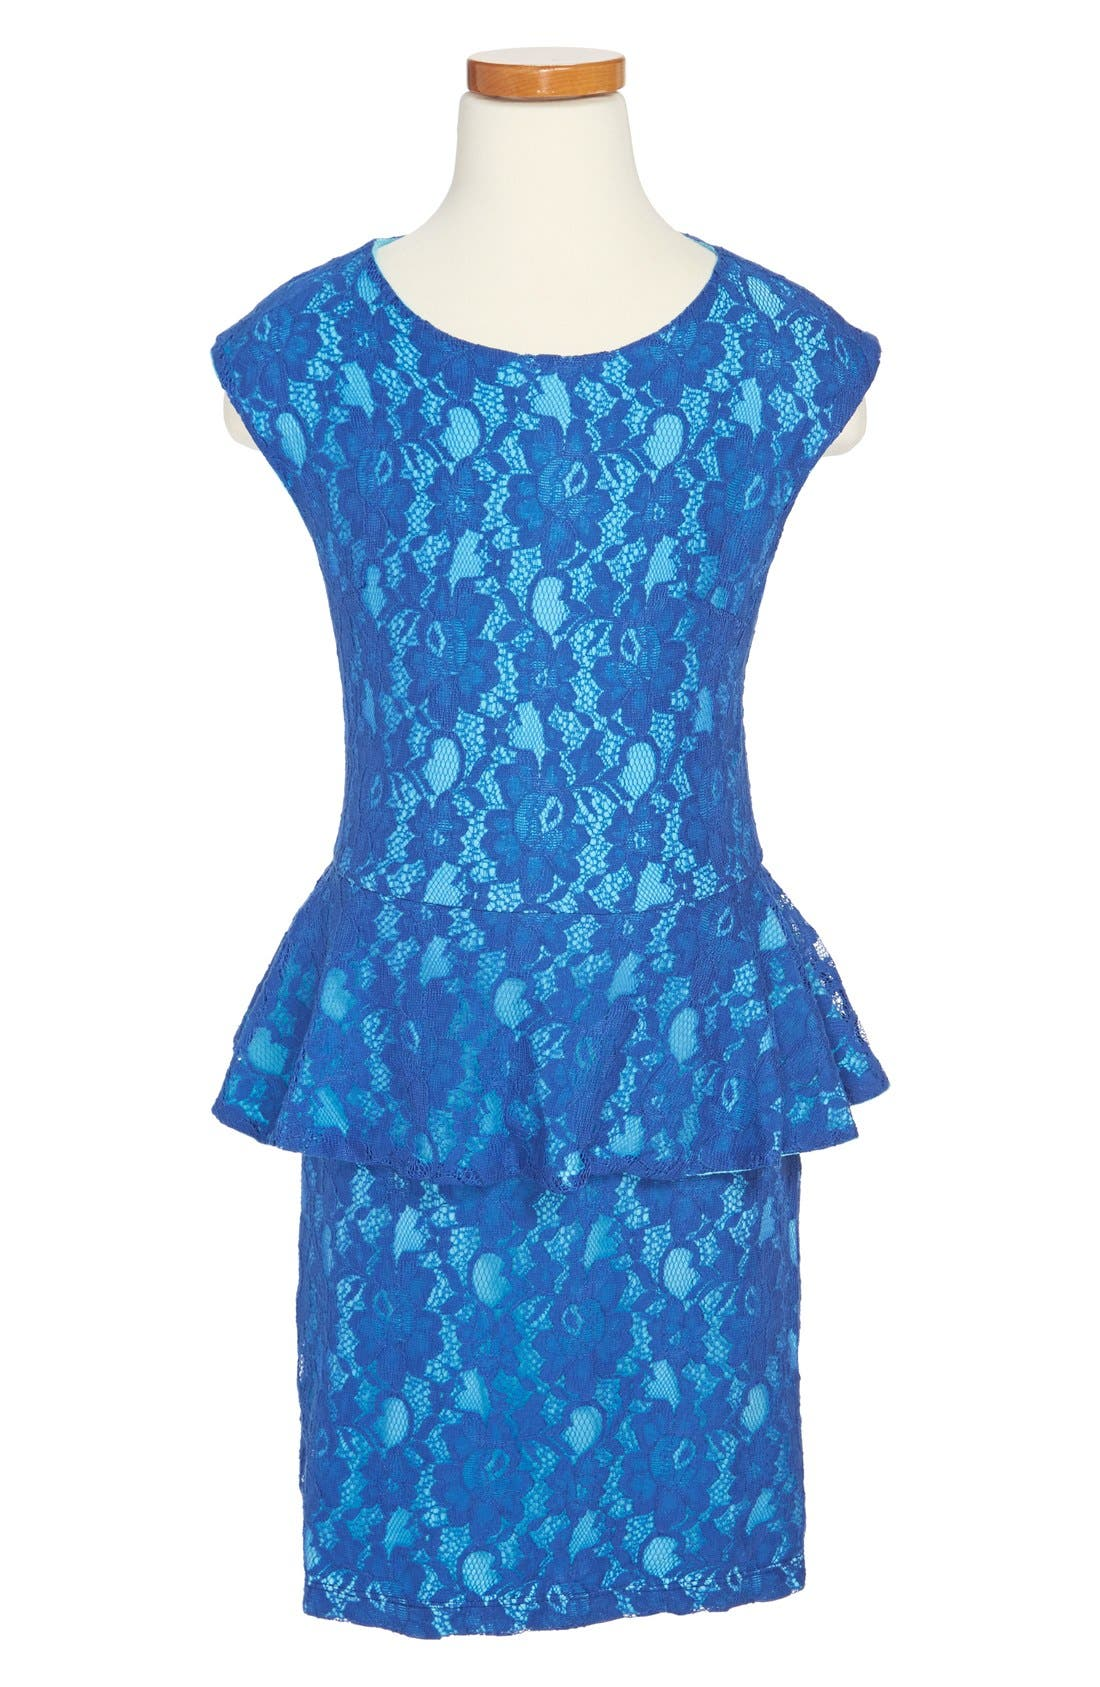 Main Image - Miss Behave 'Piper' Peplum Lace Dress (Big Girls)